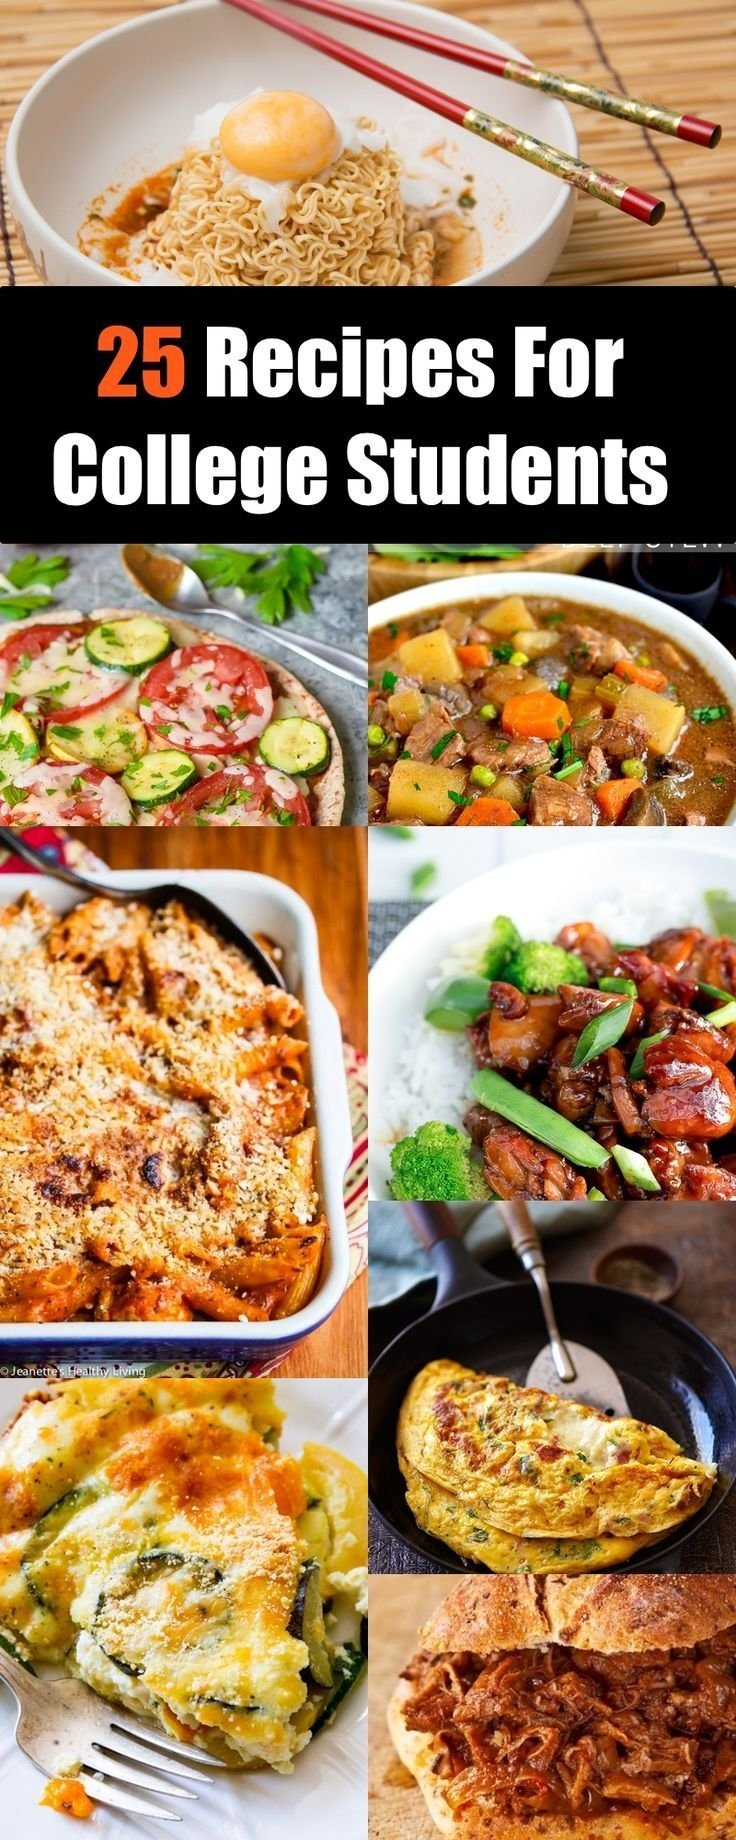 10 Cute Meal Ideas On A Budget 25 recipes for college students that wont break your budget 2020